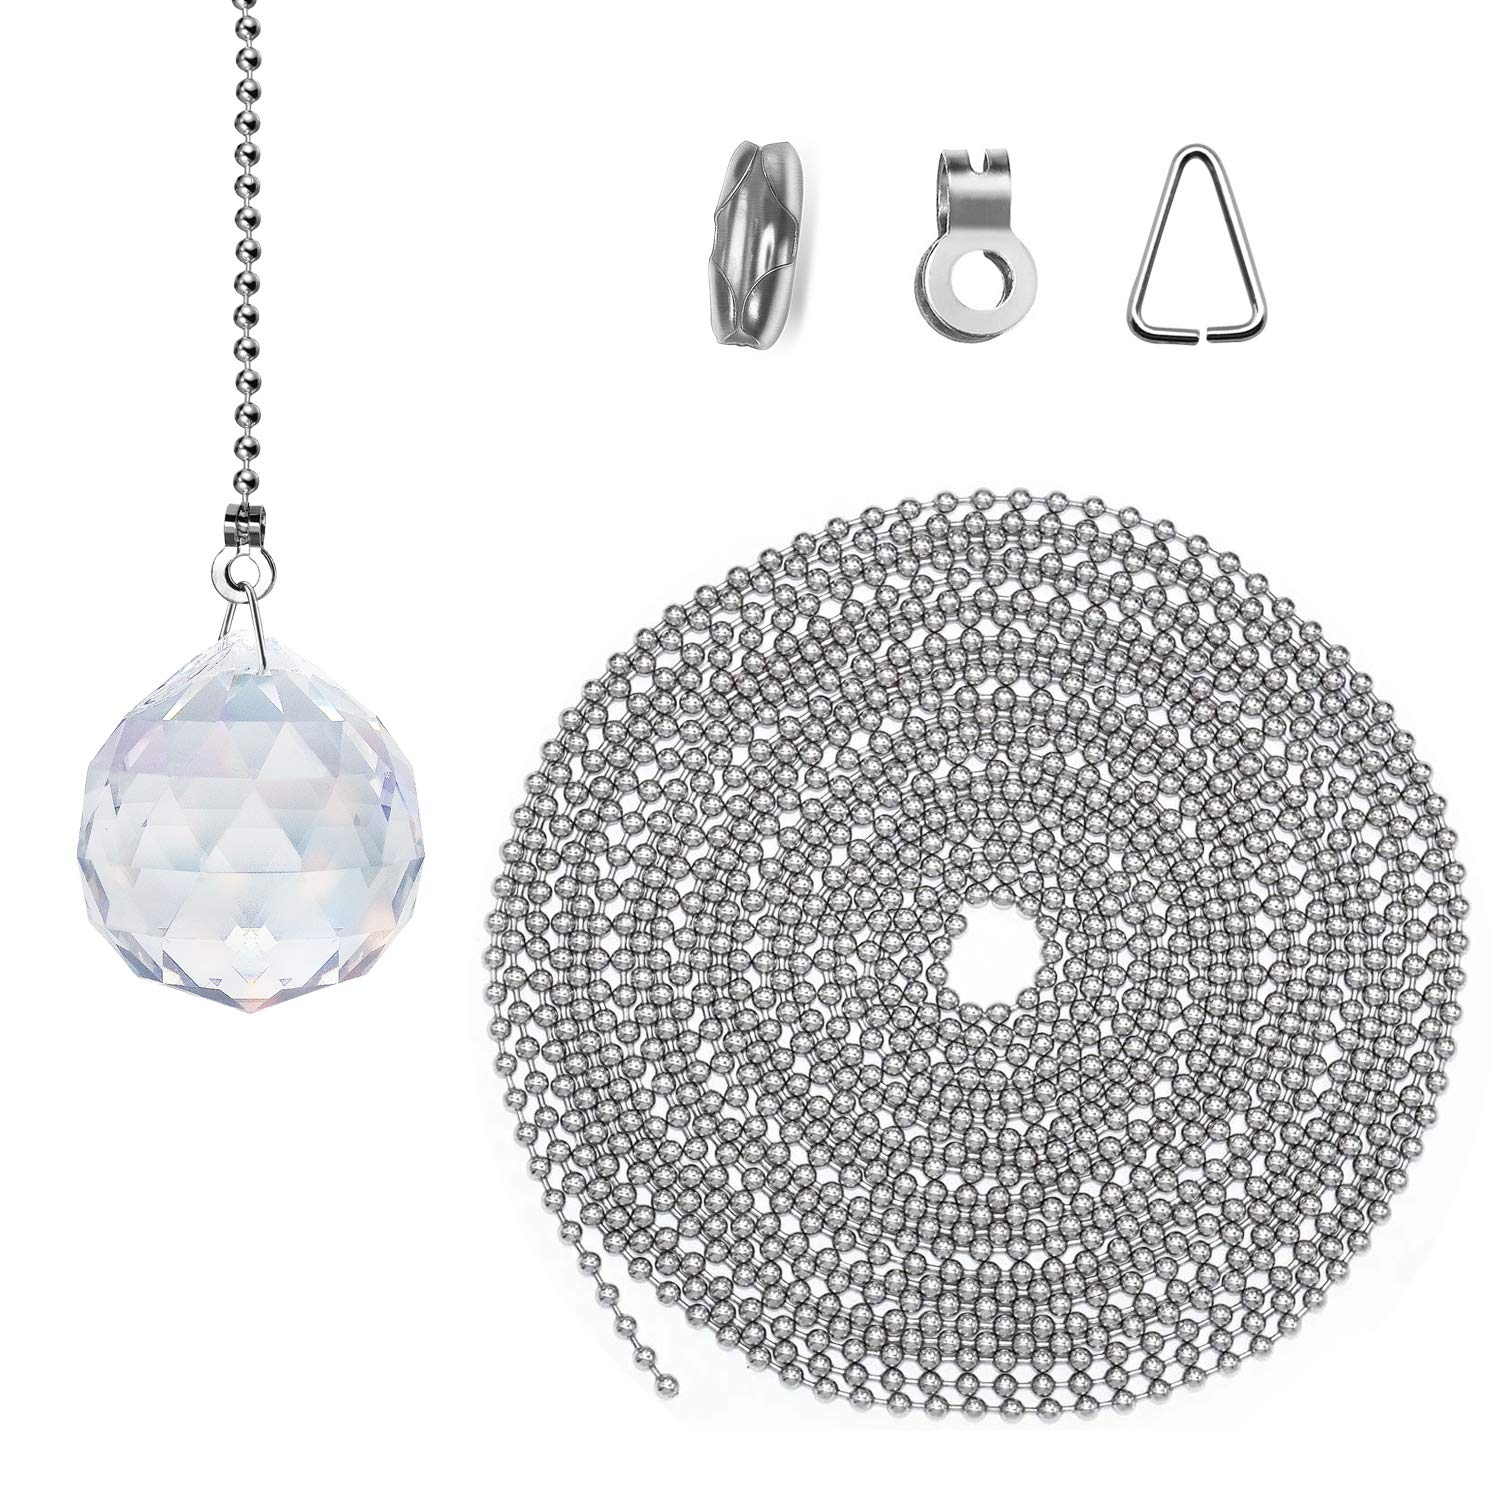 3.2mm, Silver Fan Ceiling Extenders with 40 Connectors and 2 Sets Clear Crystal Decorative 32 Feet Beaded Pull Chain Extension